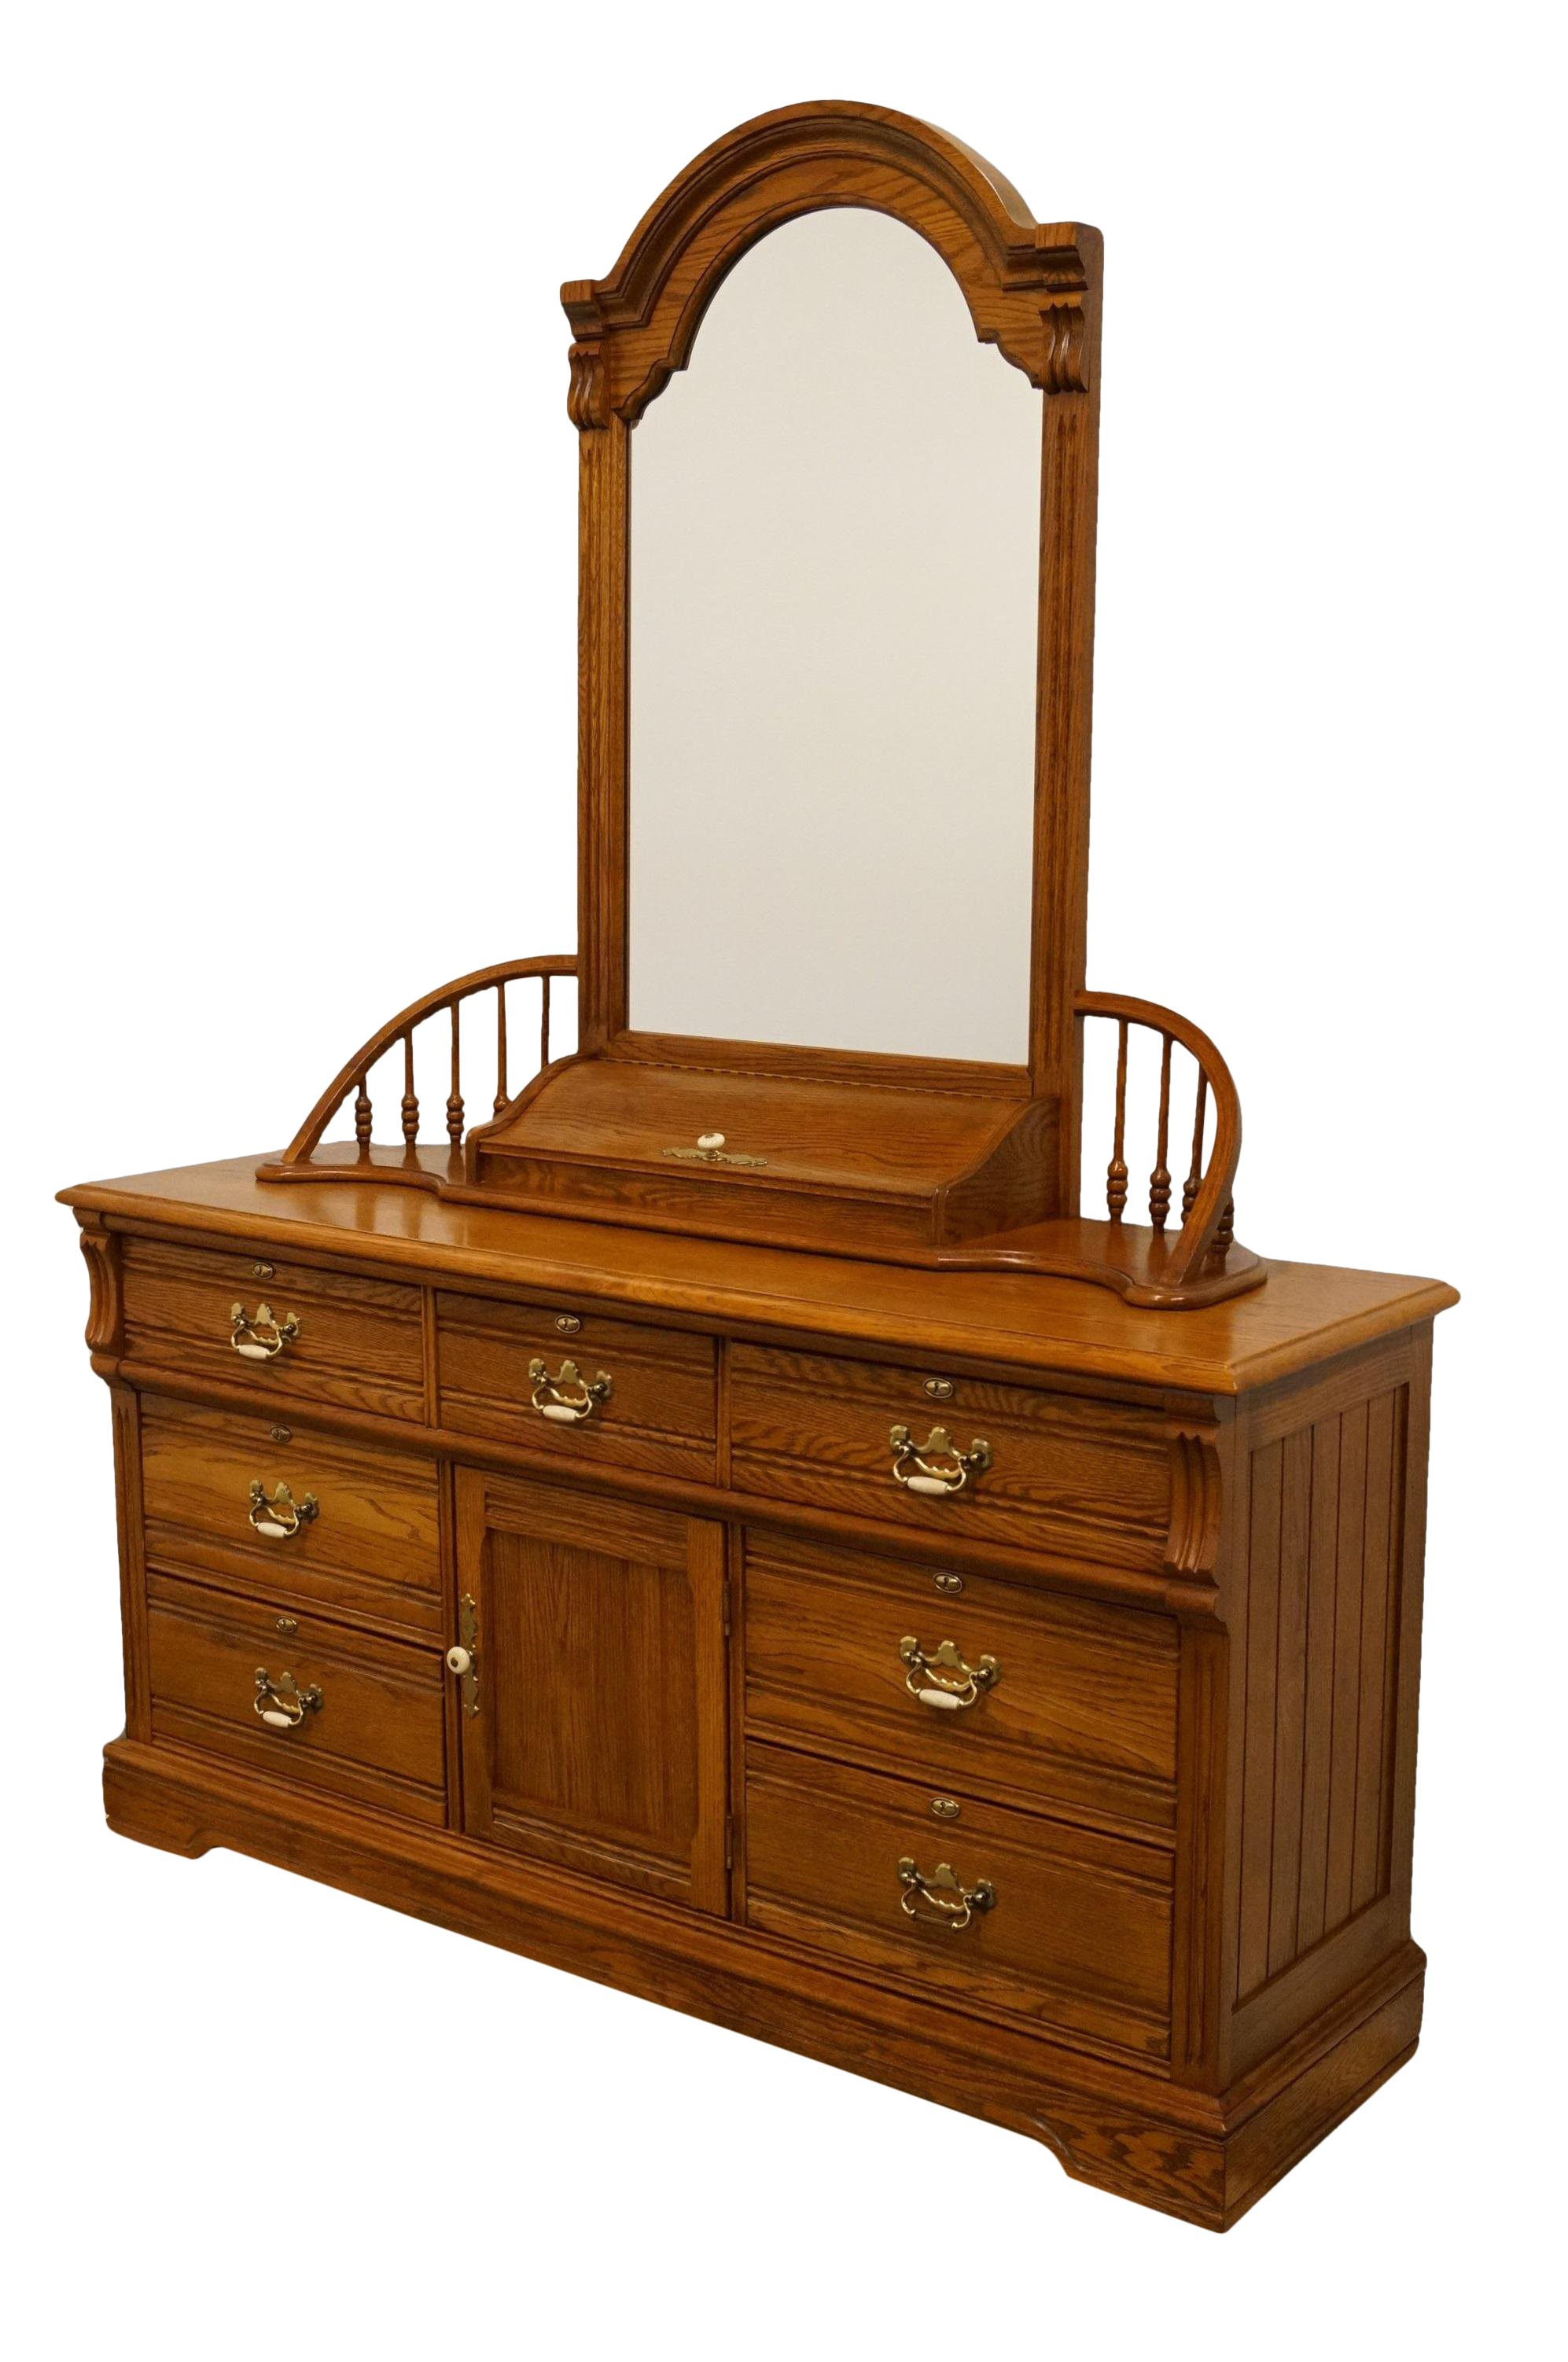 20th century traditional lexington furniture recollections collection solid oak 64 triple door dresser with mirror chairish